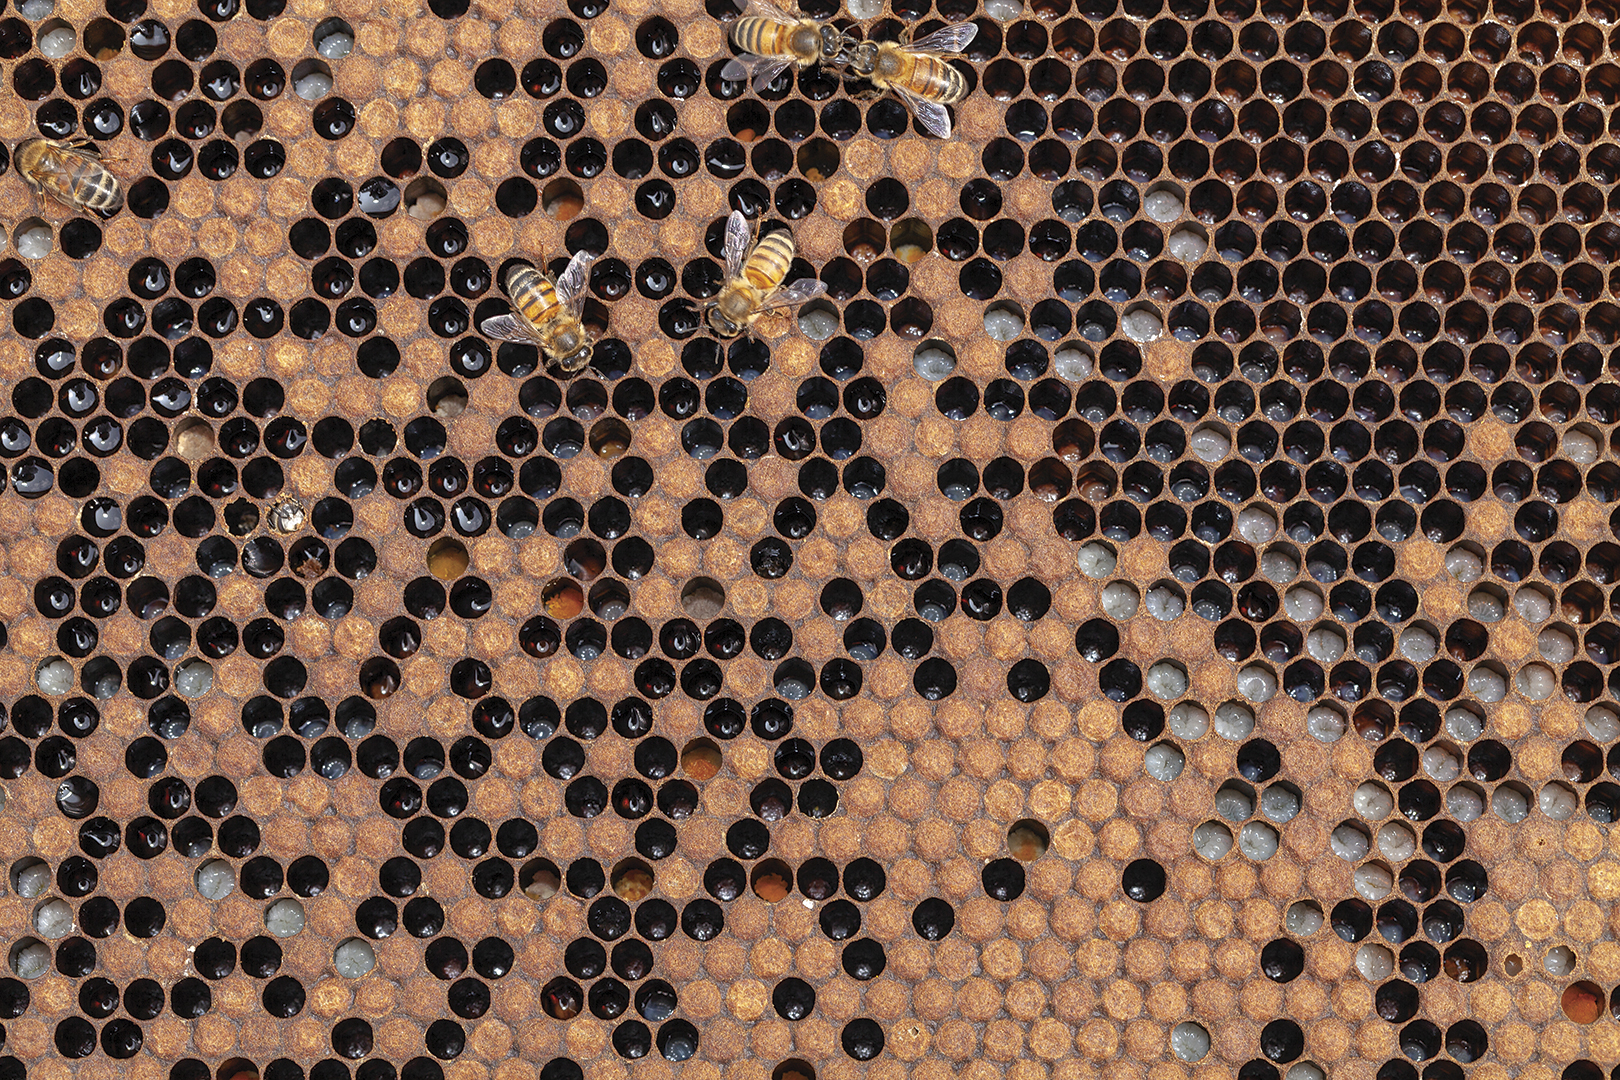 Close up of bee hive and bees